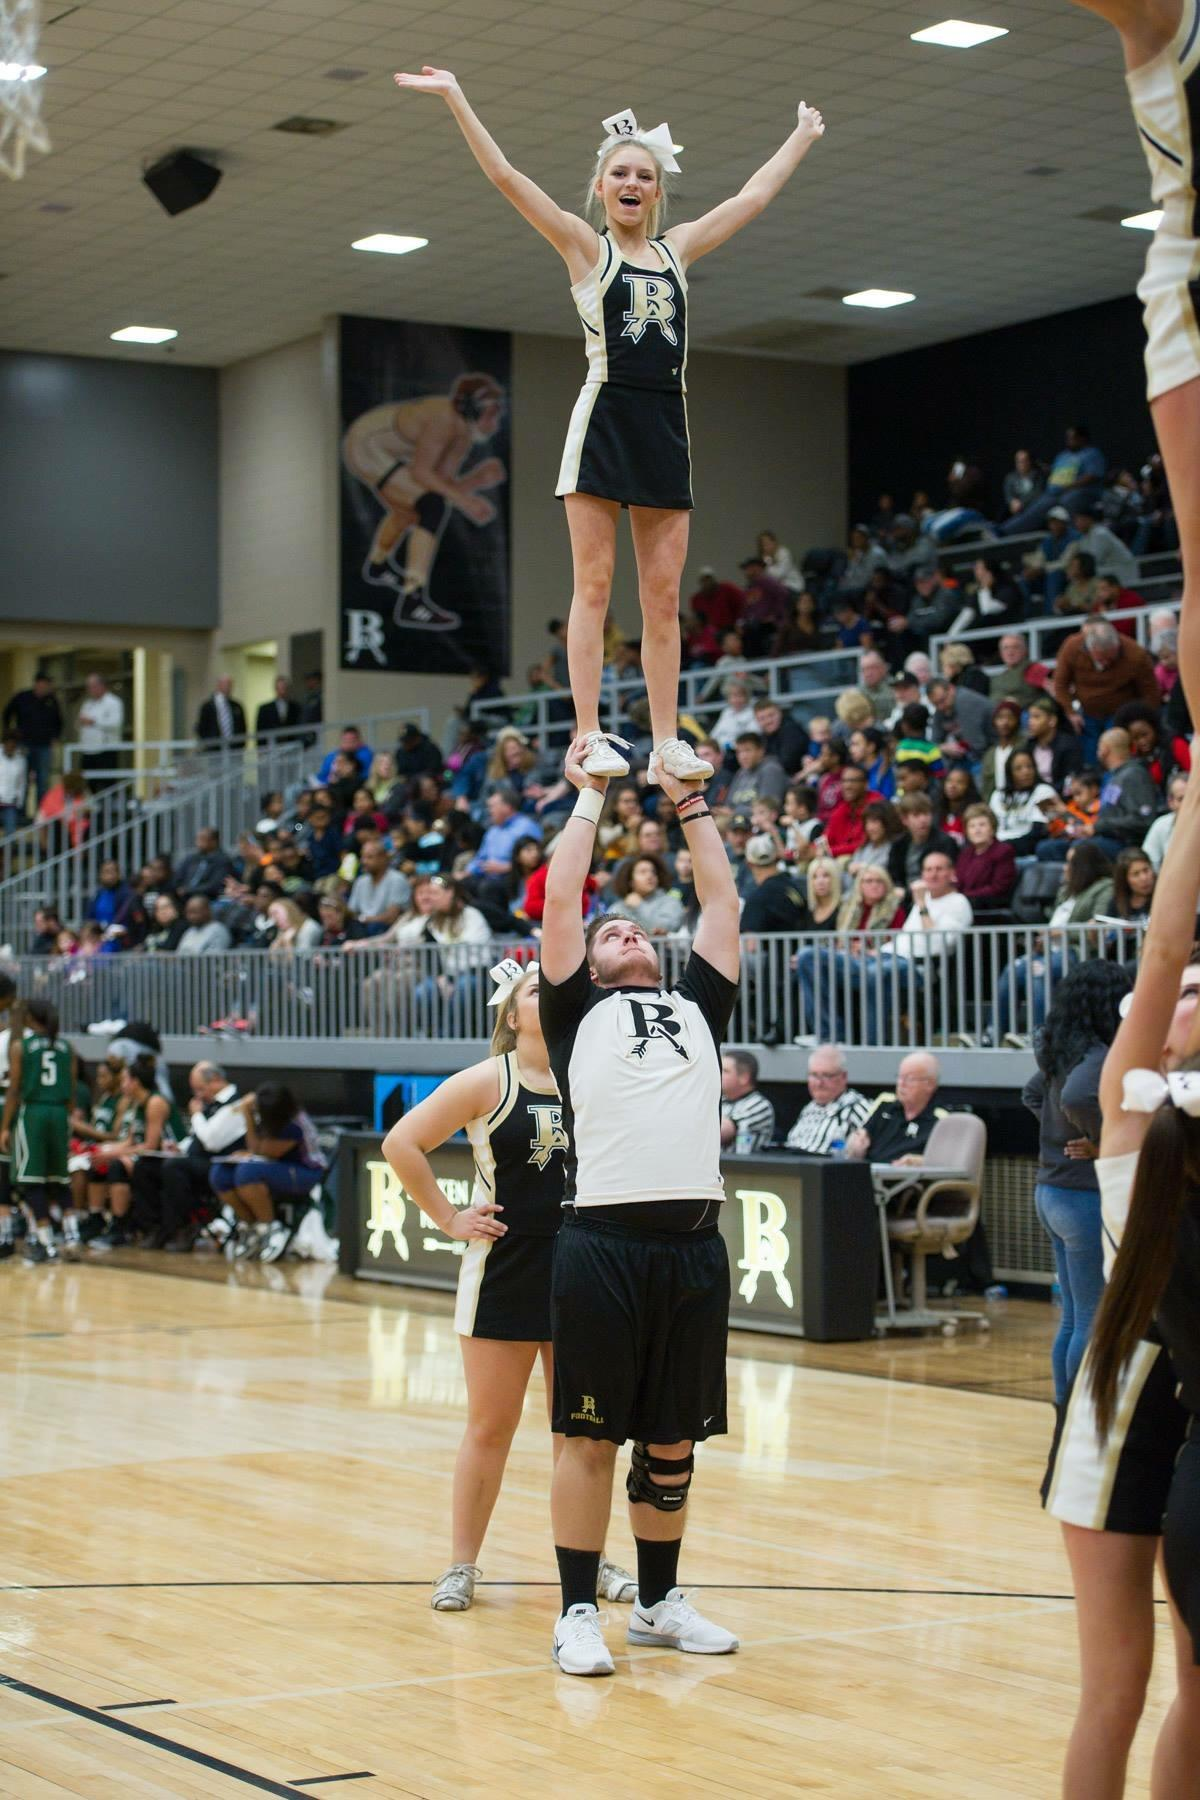 Senior Andrew Truman lifts sophomore Kenzie Schwers during a basketball game performance with the cheer team.